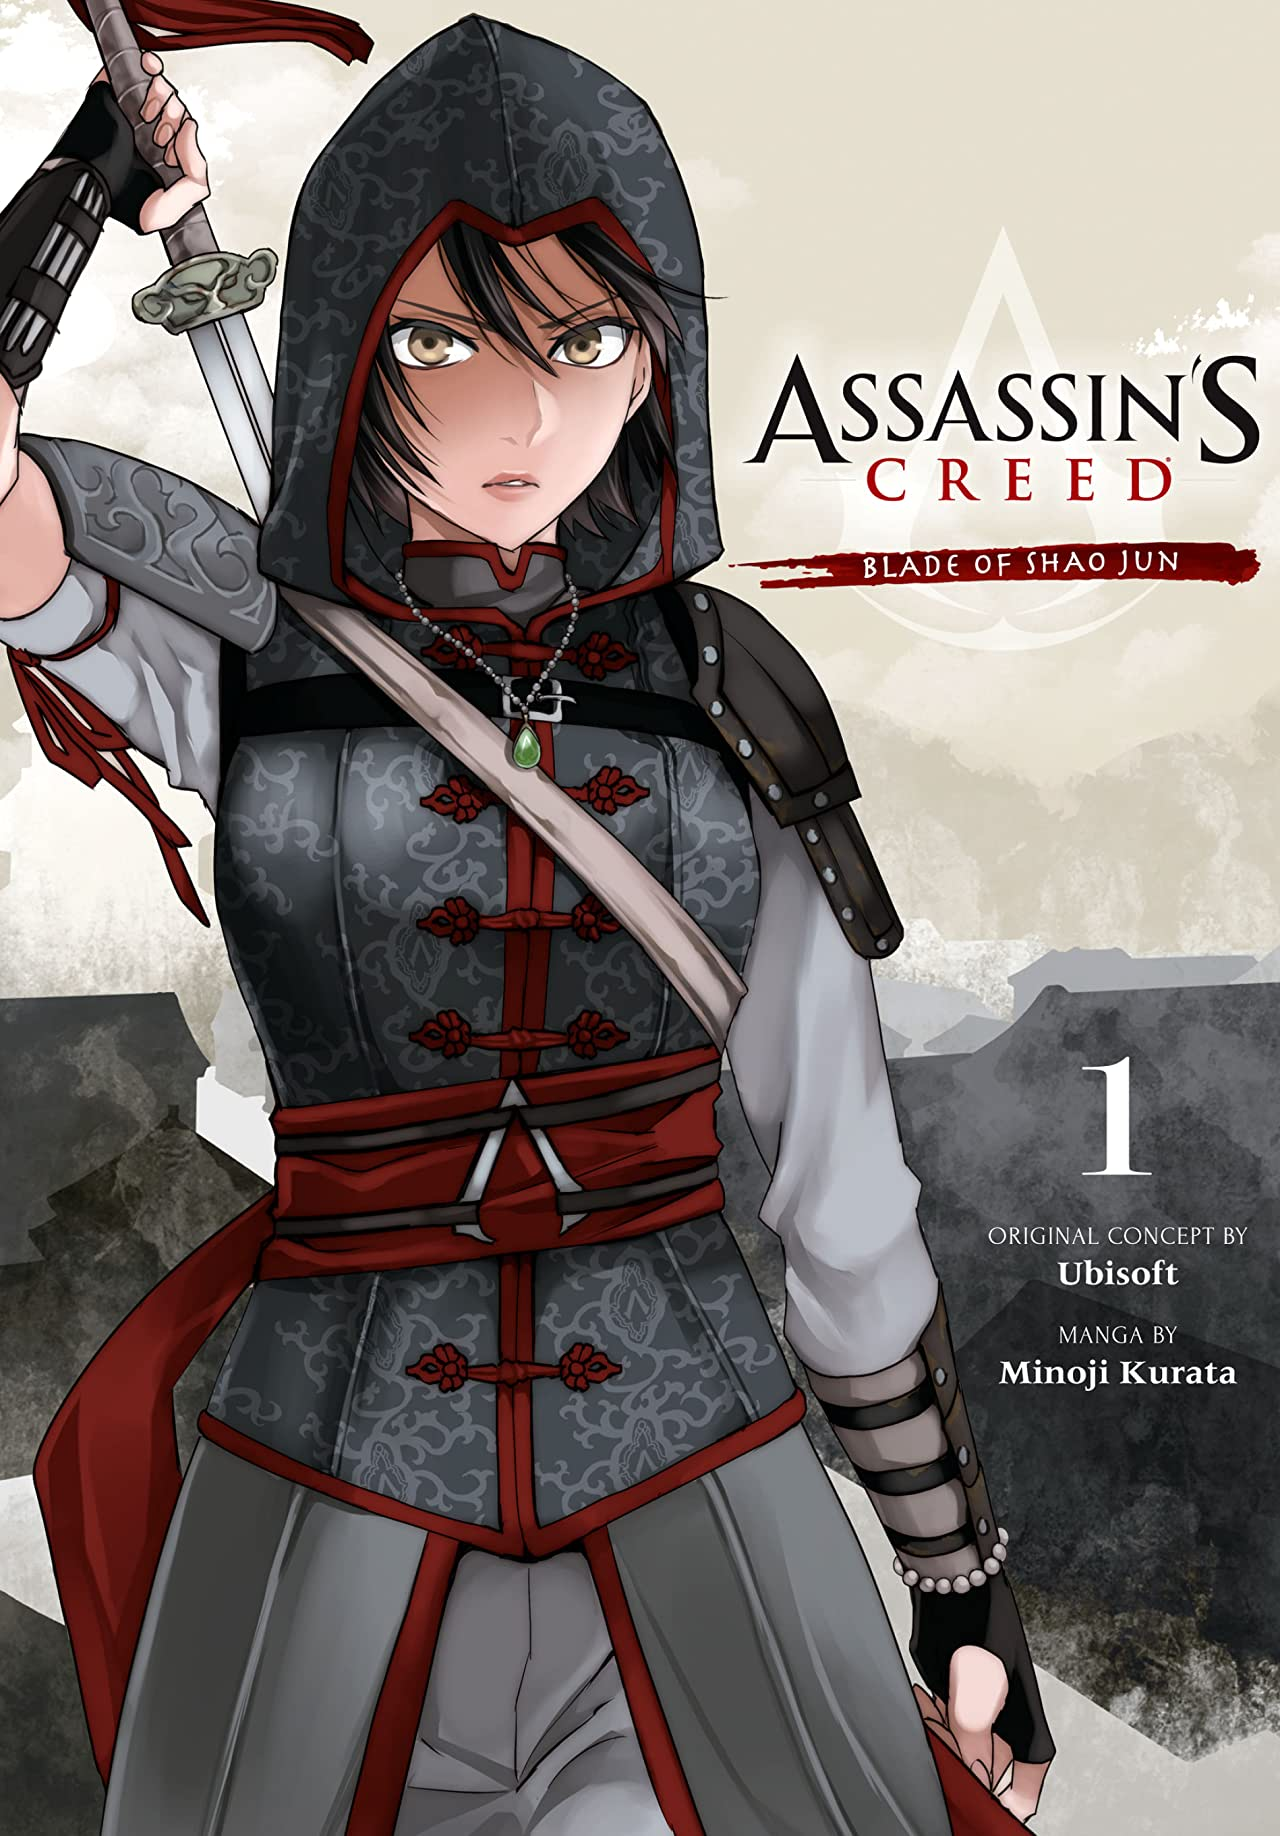 Assassin's Creed: Blade of Shao Jun Vol. 1